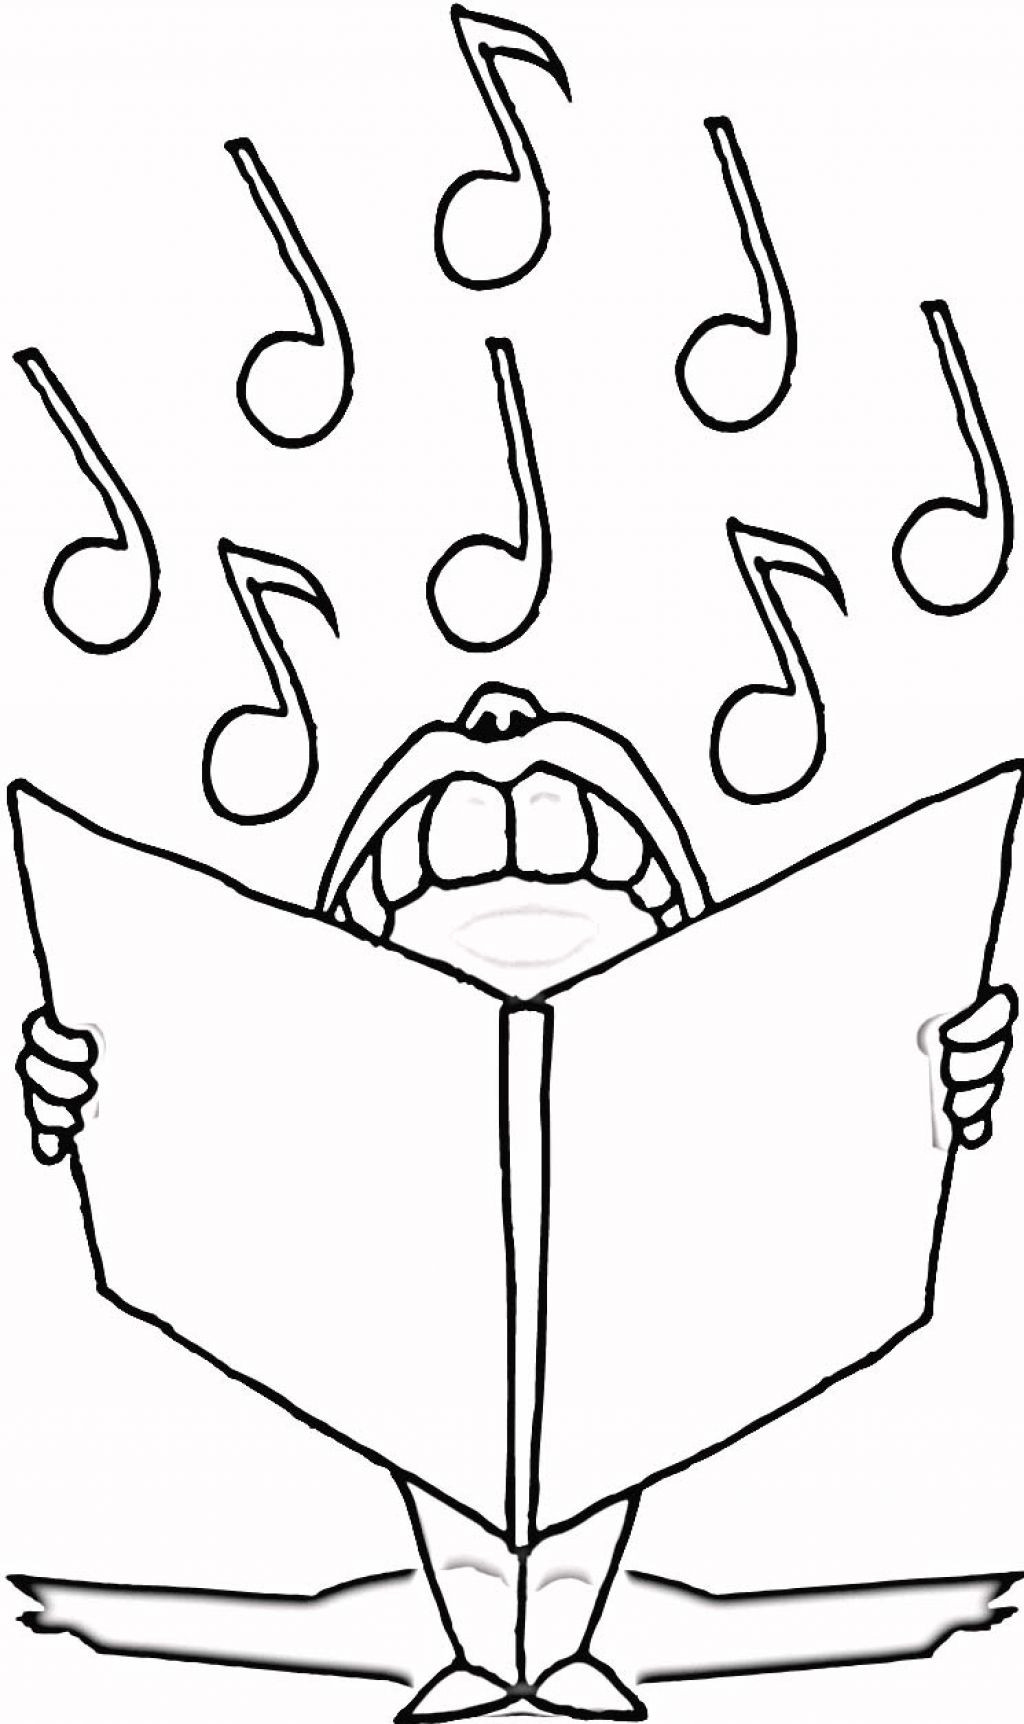 Musical Coloring Pages For Kids  Free Printable Music Note Coloring Pages For Kids